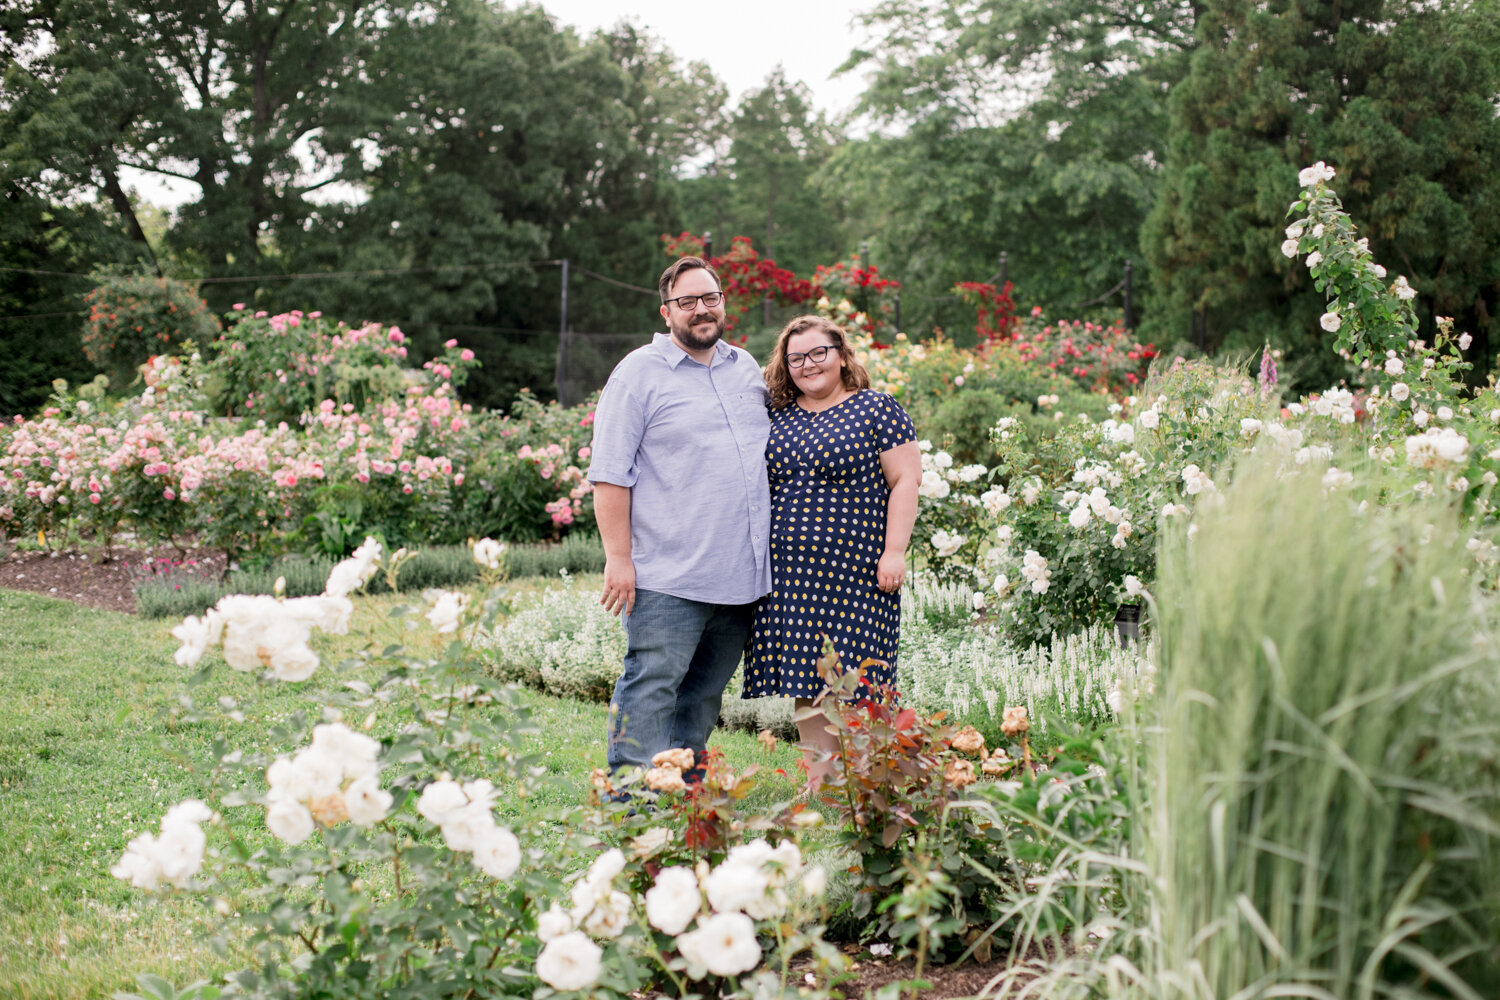 morris-arboretum-chestnut-hill-garden-engagement-session-philadelphia-wedding-photography-23.jpg